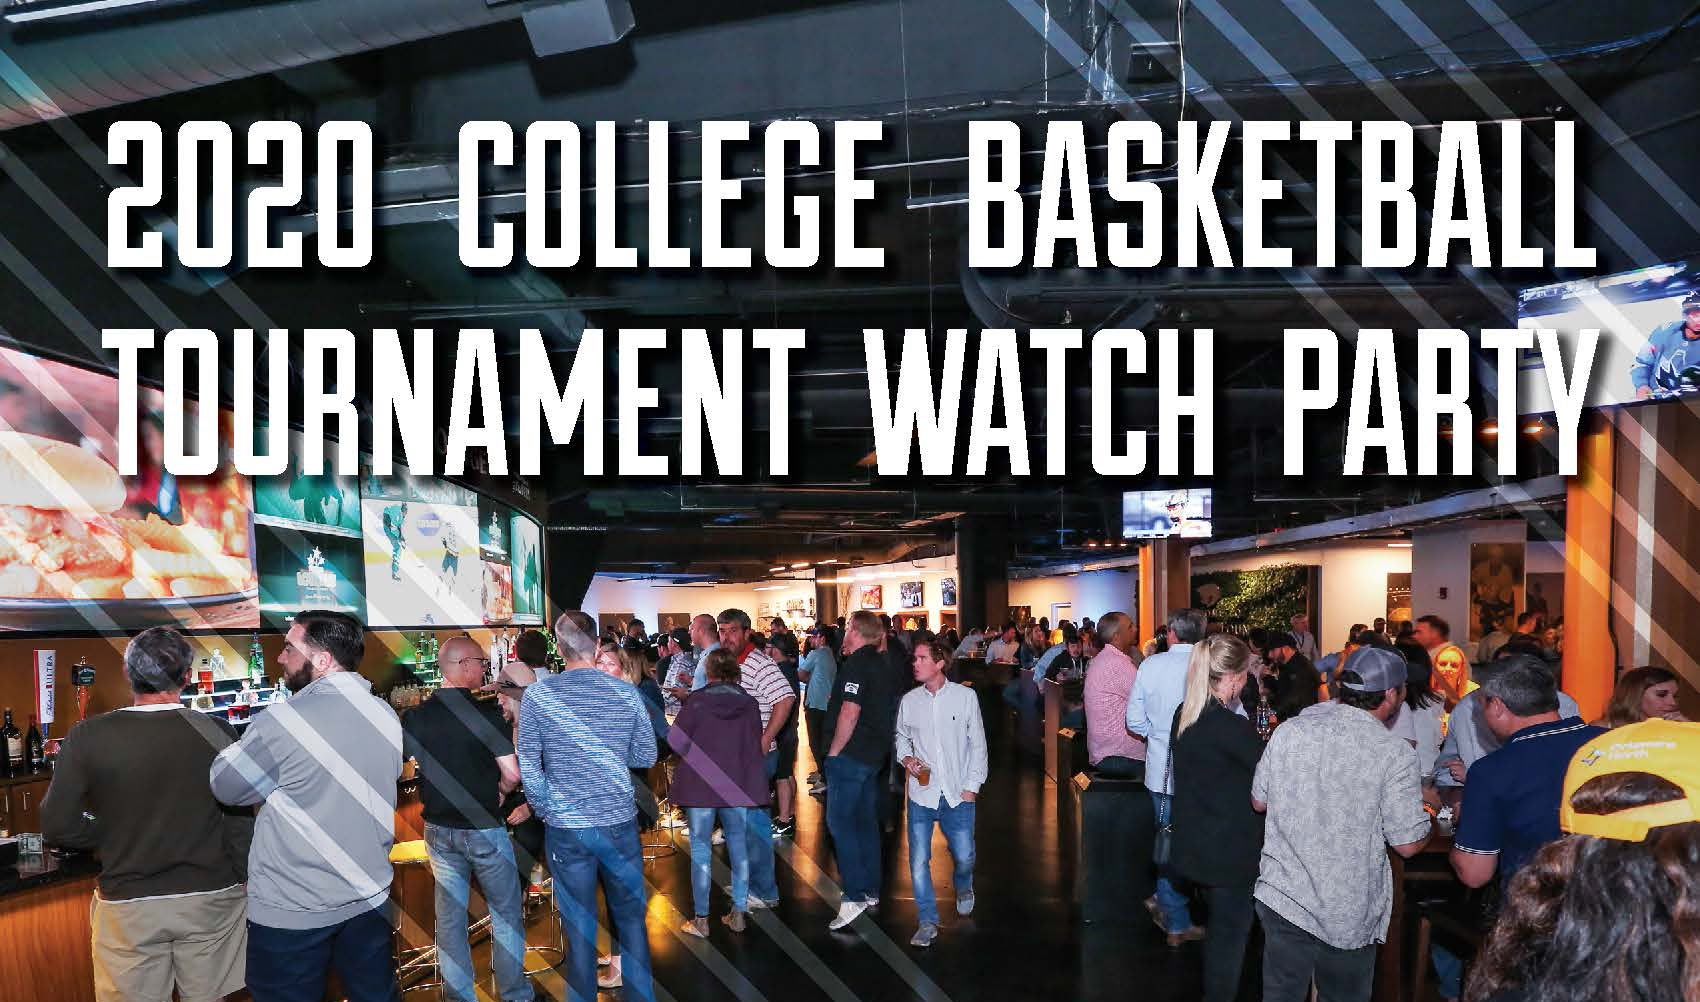 More Info for 2020 College Basketball Tournament Watch Party